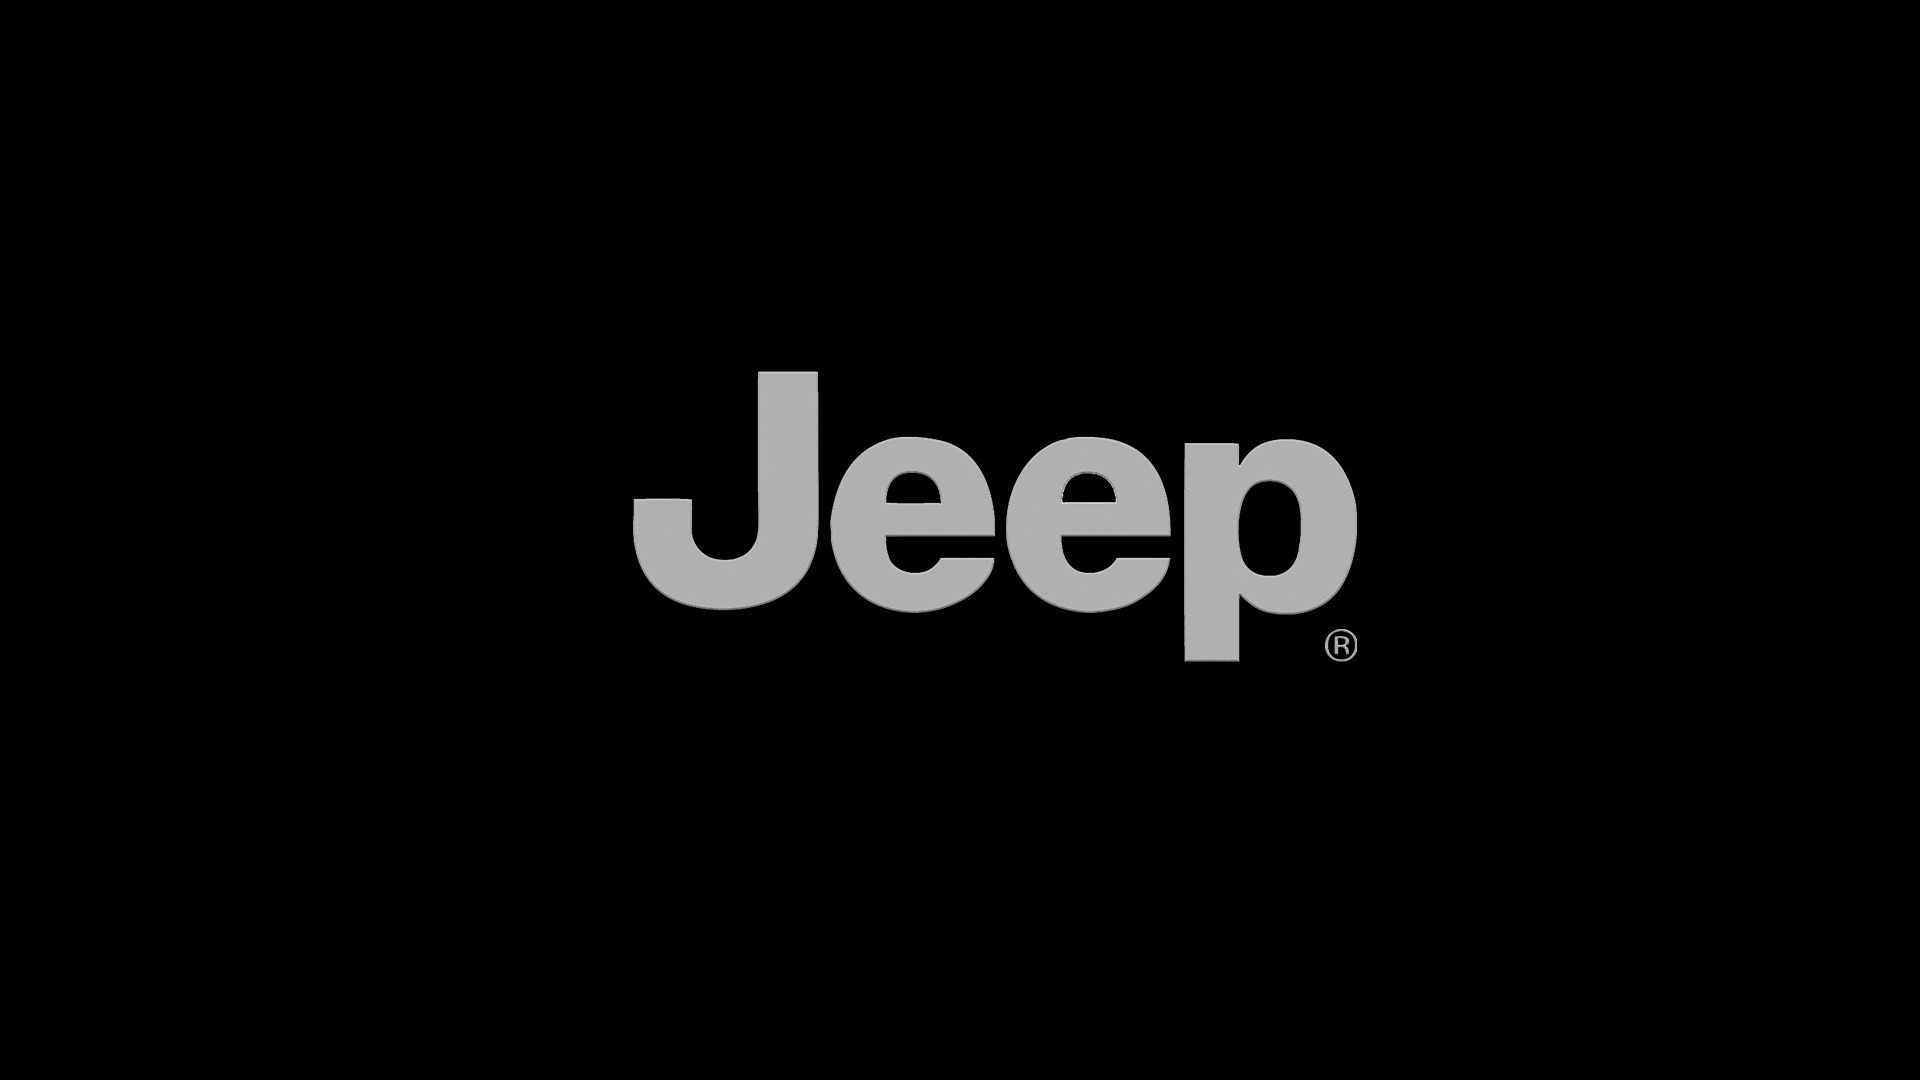 jeep logo wallpaper (61+ images)